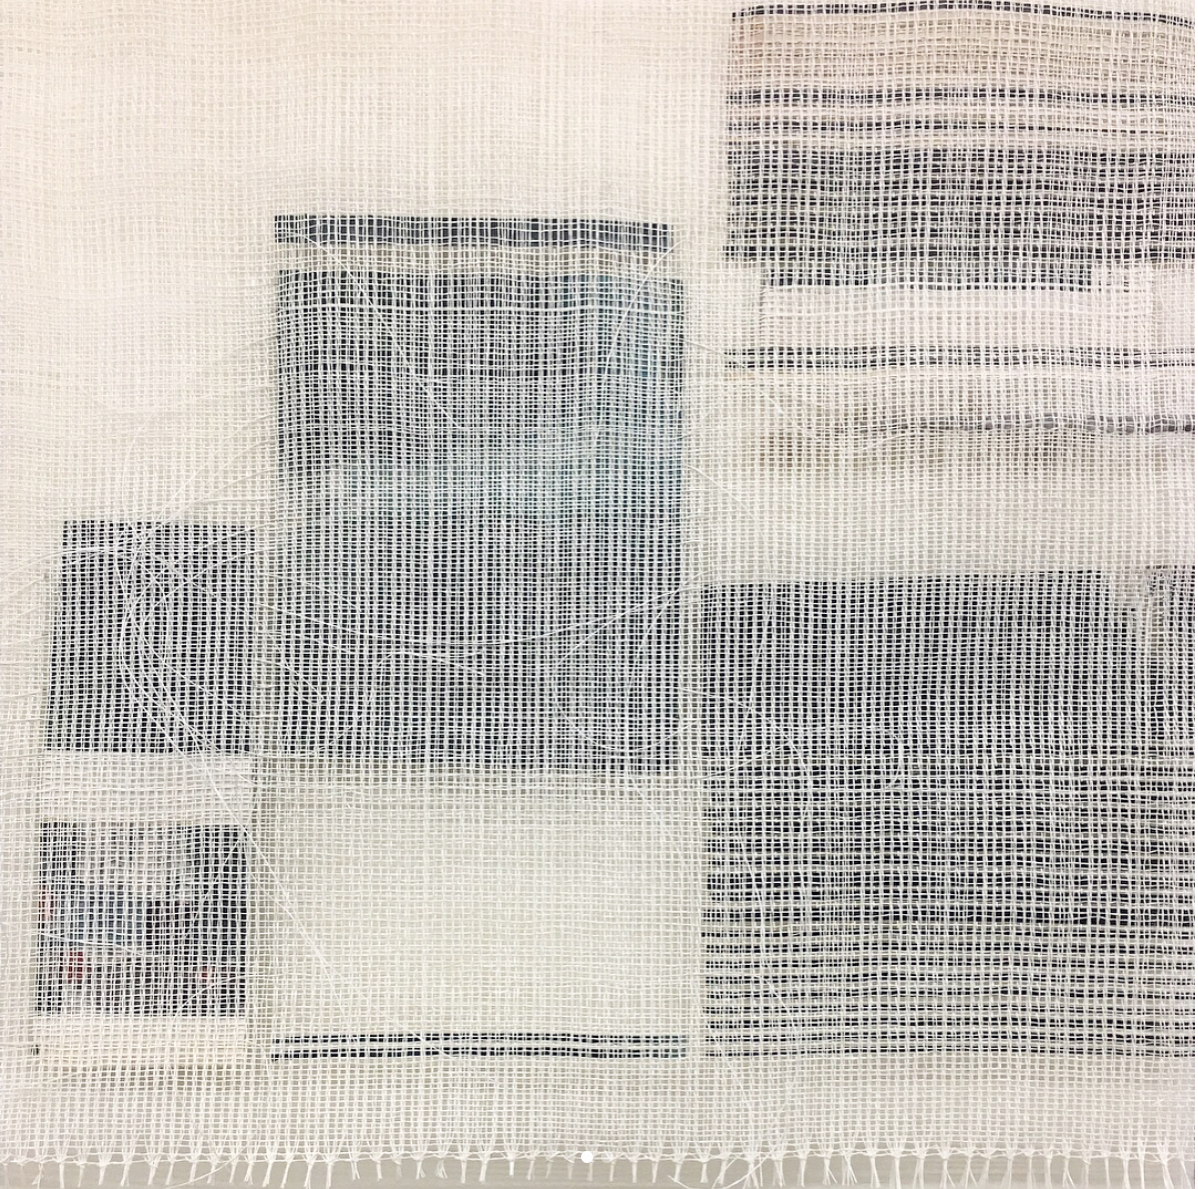 "Experimental Drawing and Sketchbook Development, paper/weaving, 18"" x 13"""